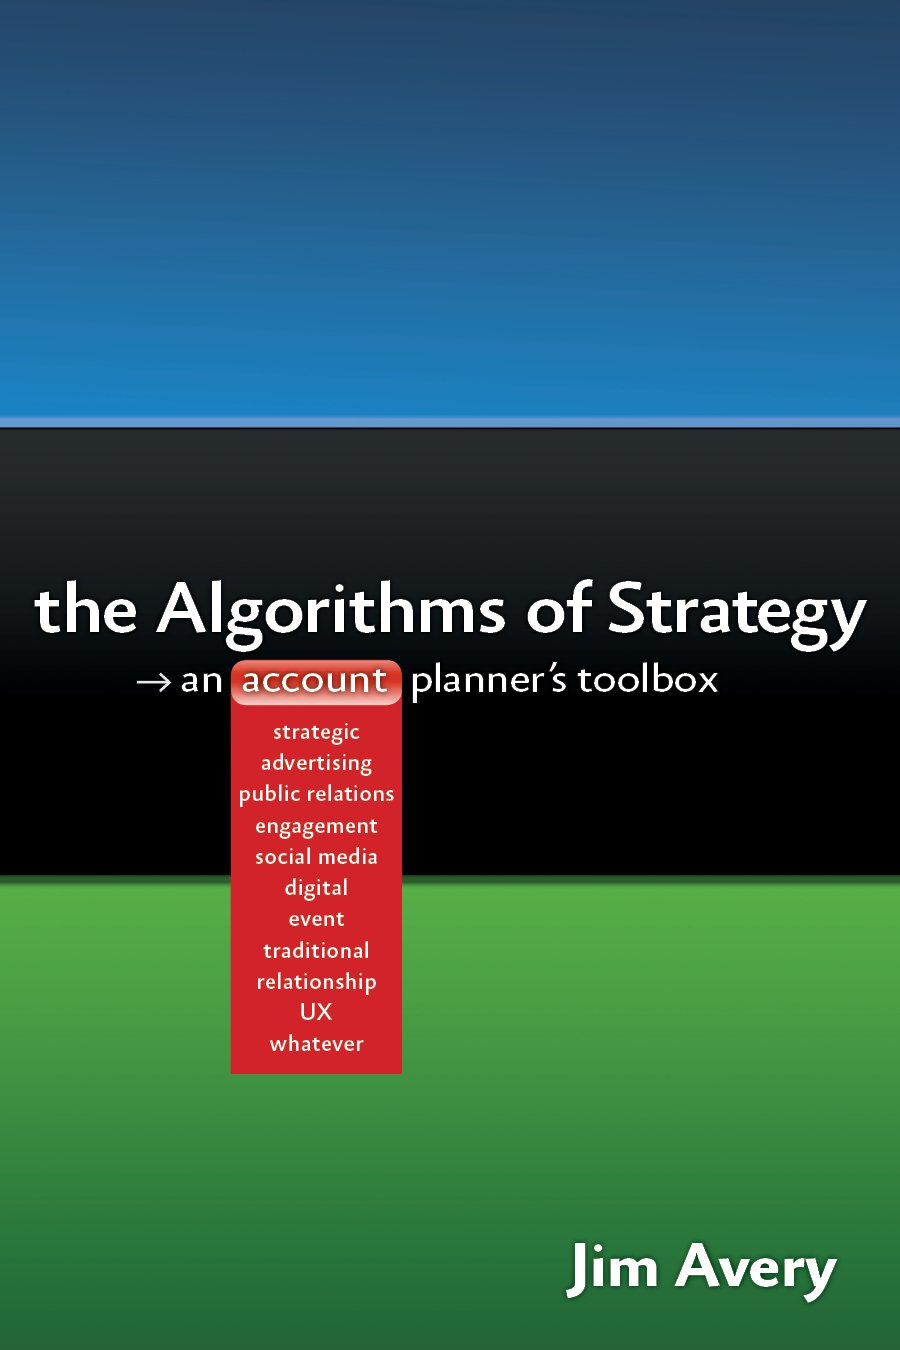 The Algorithms of Strategy: An Account Planner's Toolbox